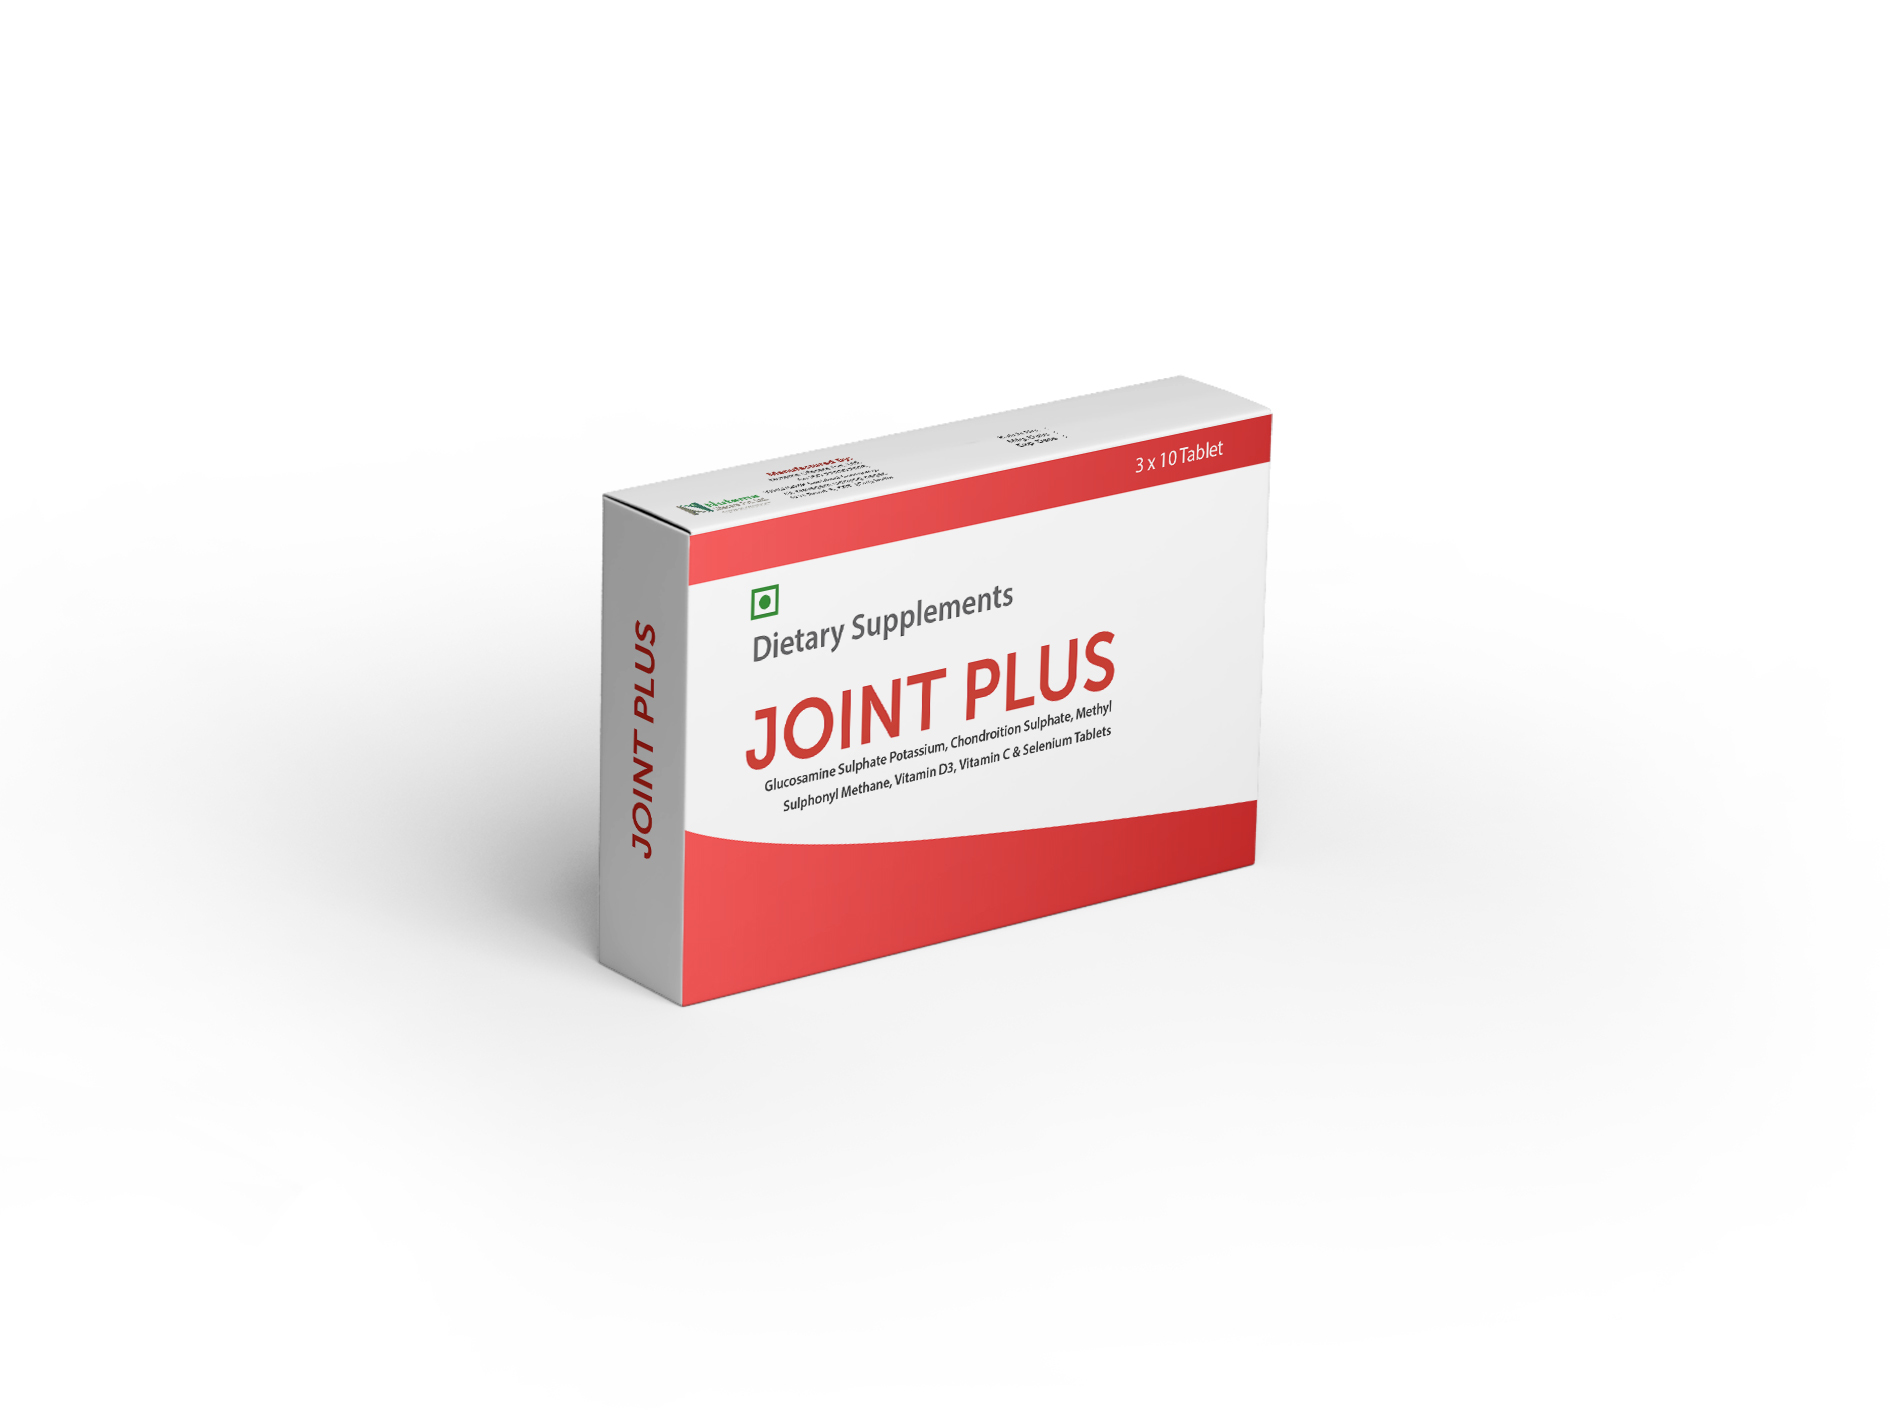 Dietary Supplements Joint Plus